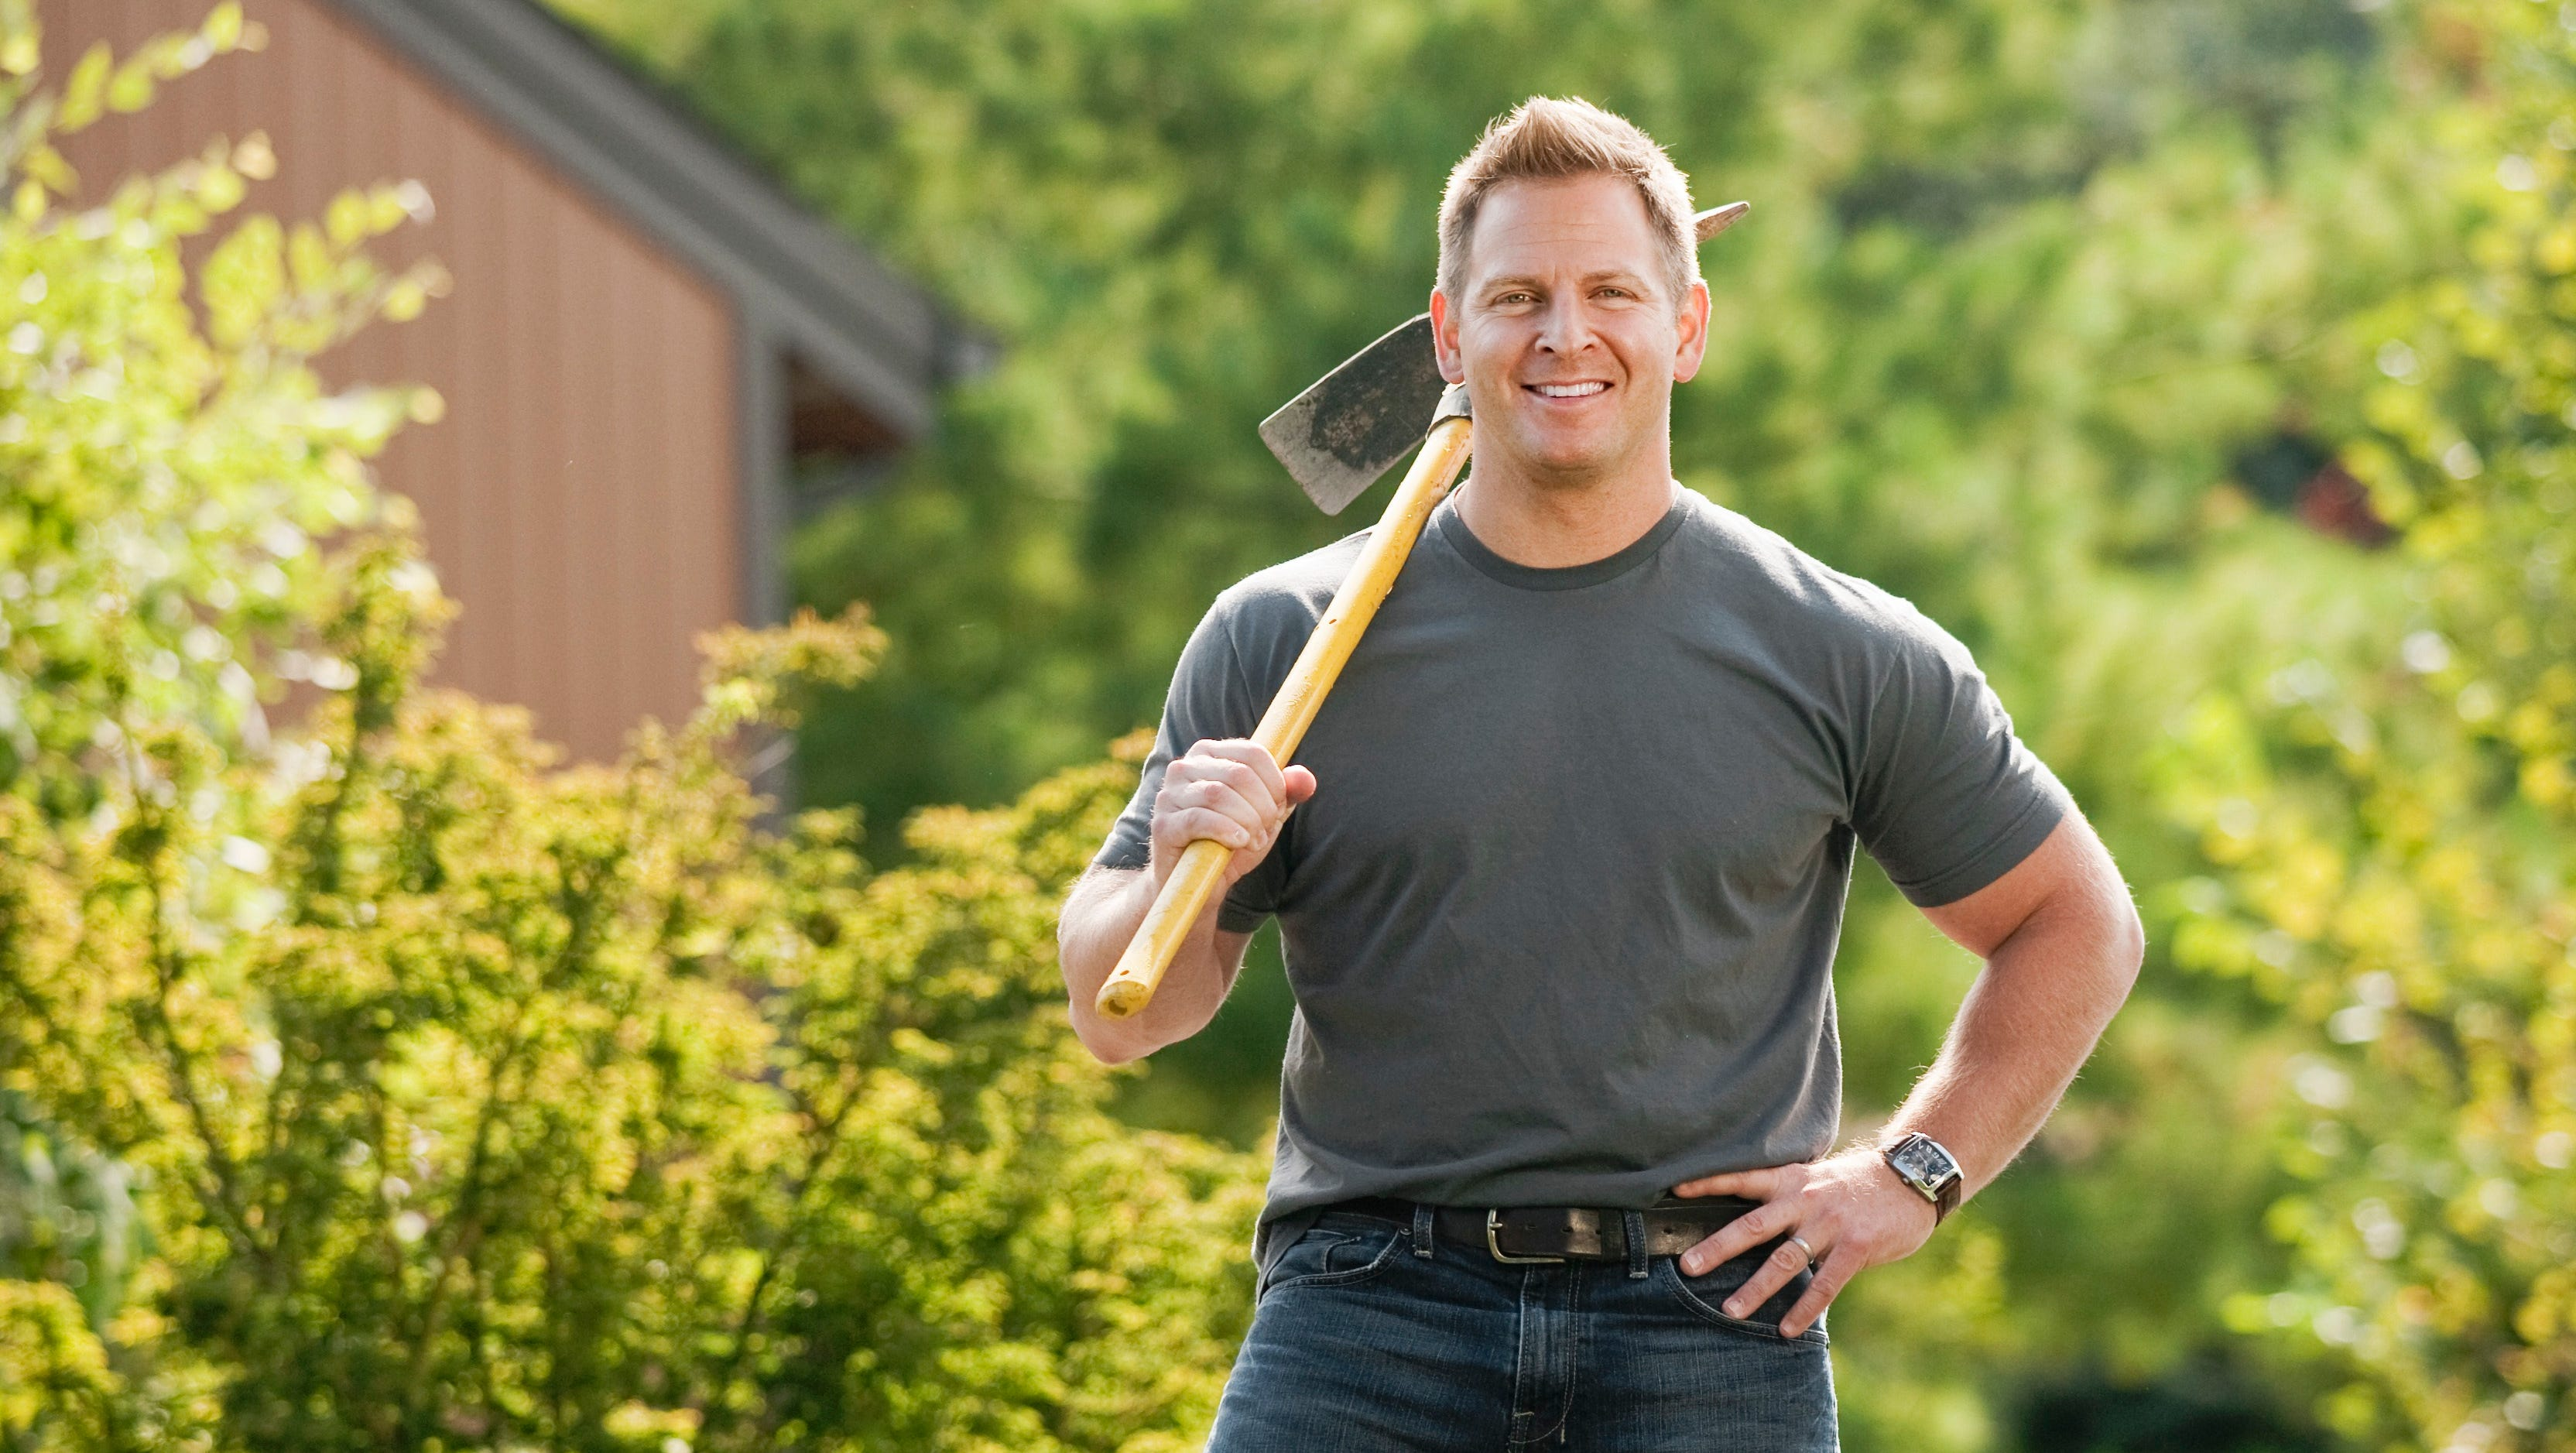 Jaytv Looking For More Desperate Landscapes Jason cameron comes to a lucky viewer's home who is in desparate need for a landscape makeover. desperate landscapes